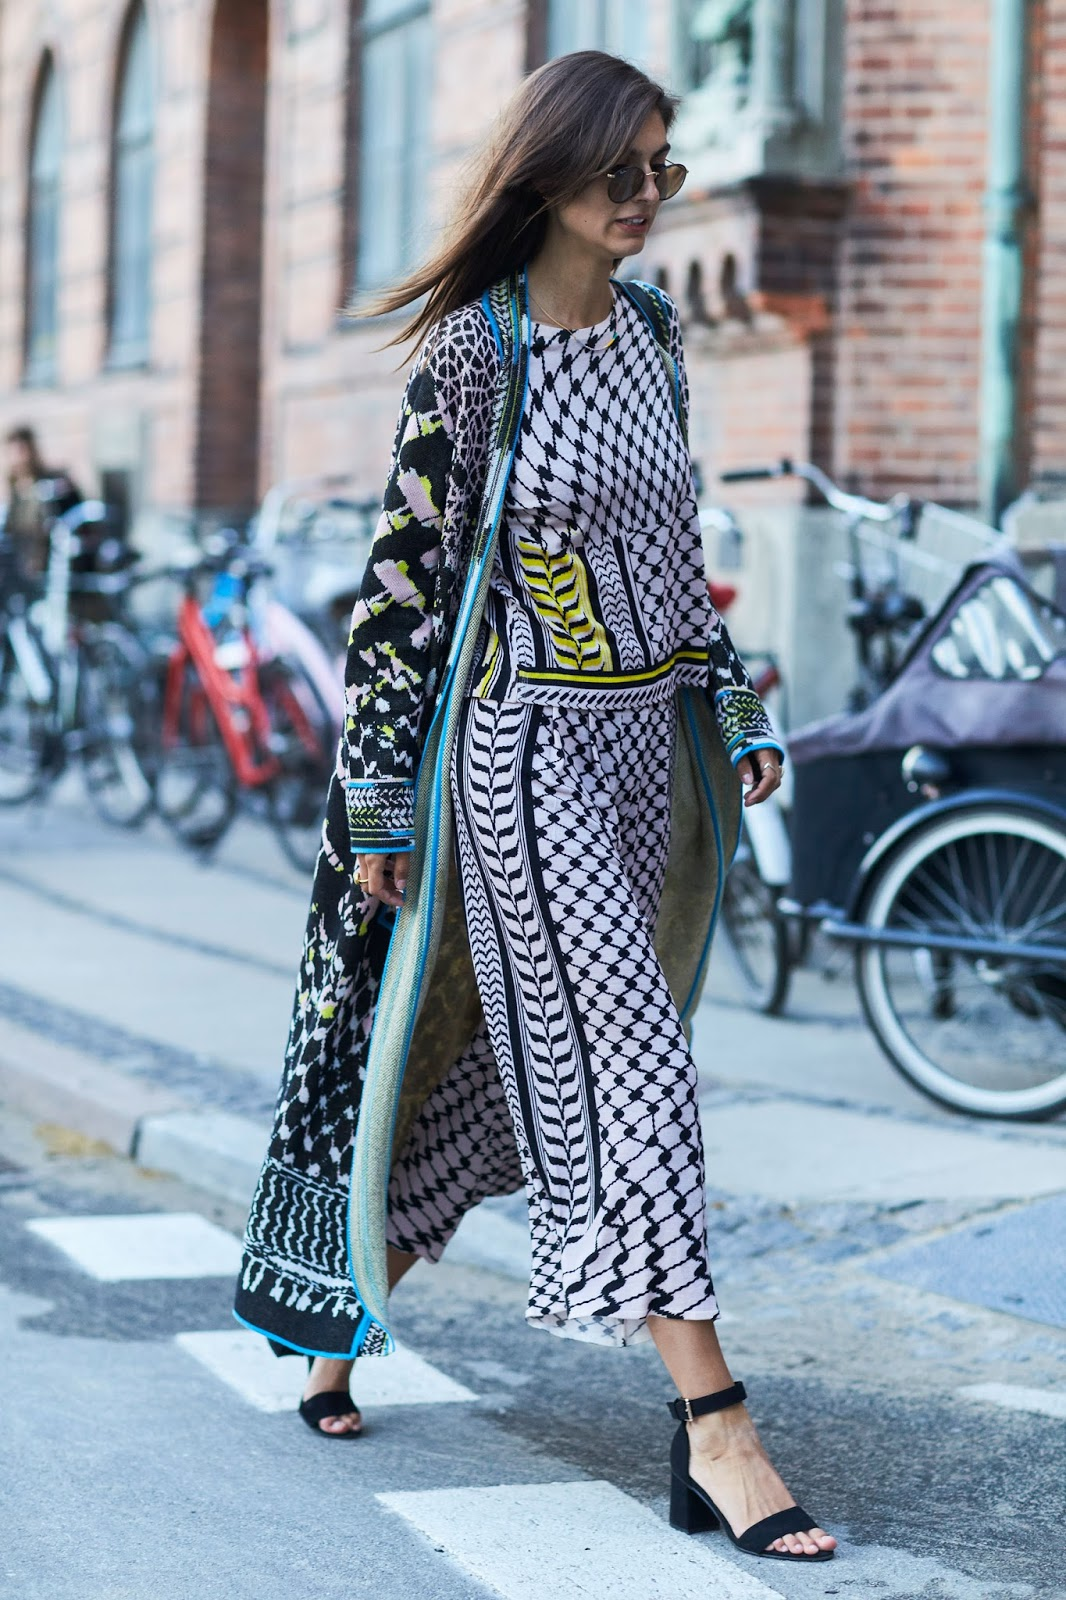 Street Style: Stockholm Fashion Week 2017